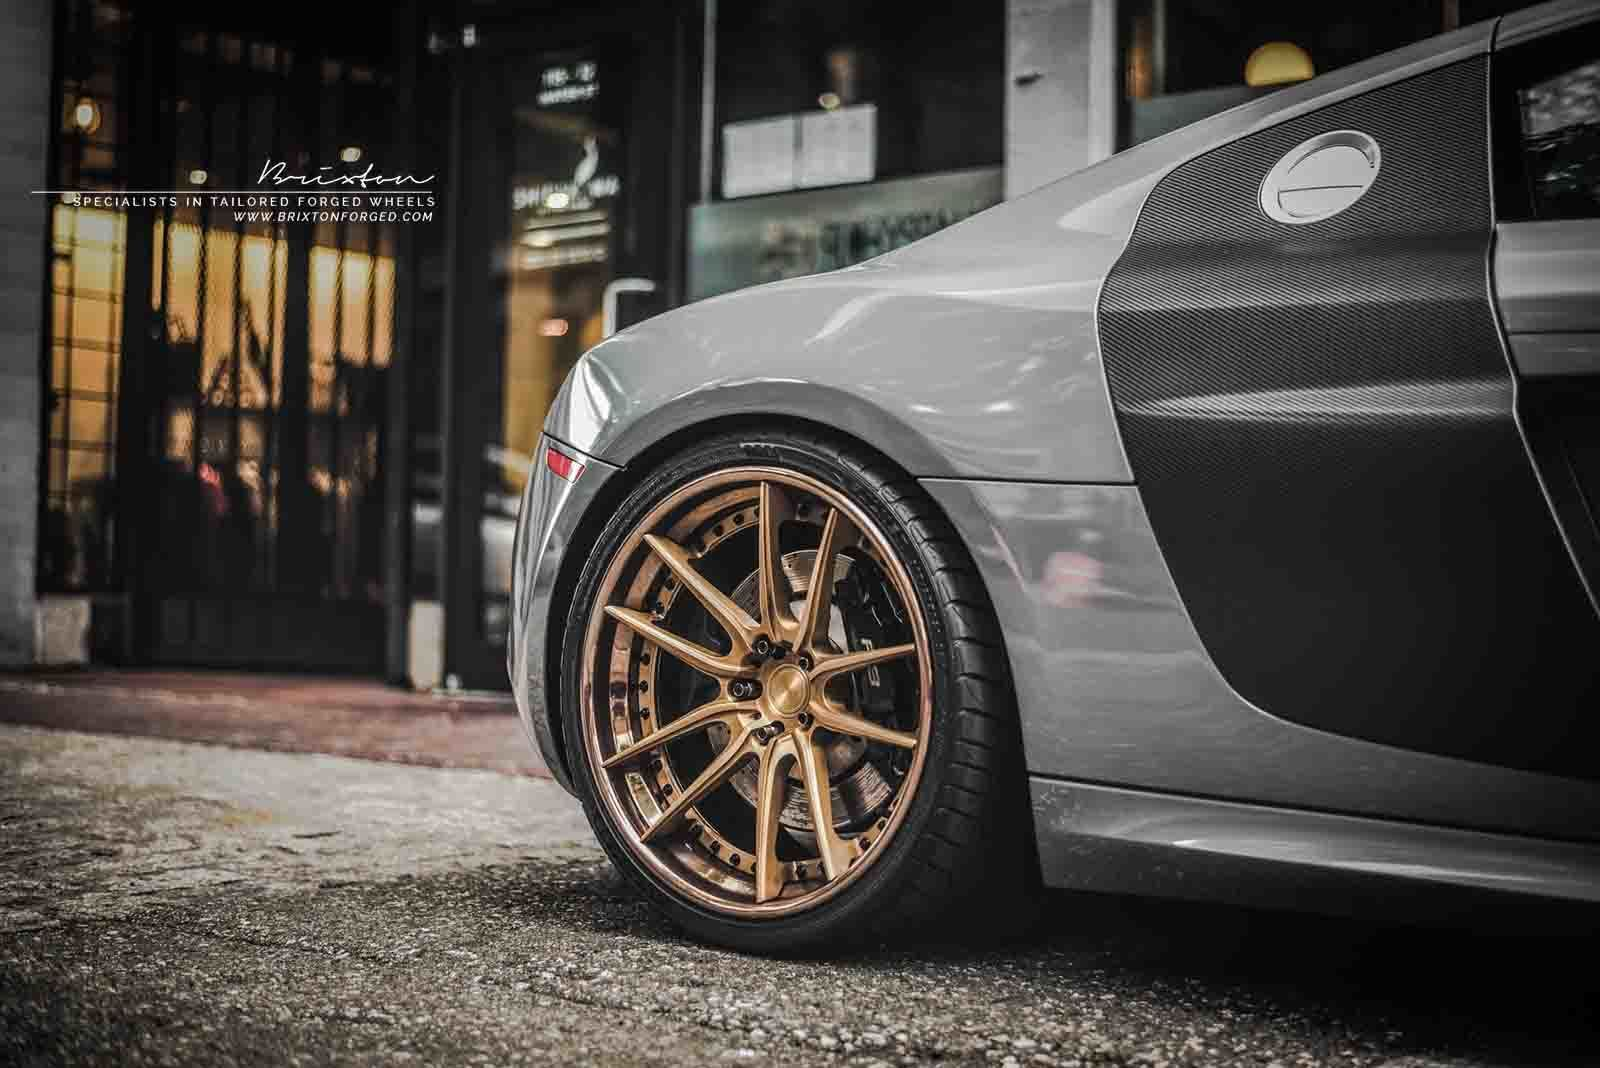 images-products-1-2255-232974543-brixton-forged-m53-targa-series-audi-r8-v10-grey-20-inch-super-concave-3-piece-brushed-bronze-06.jpg